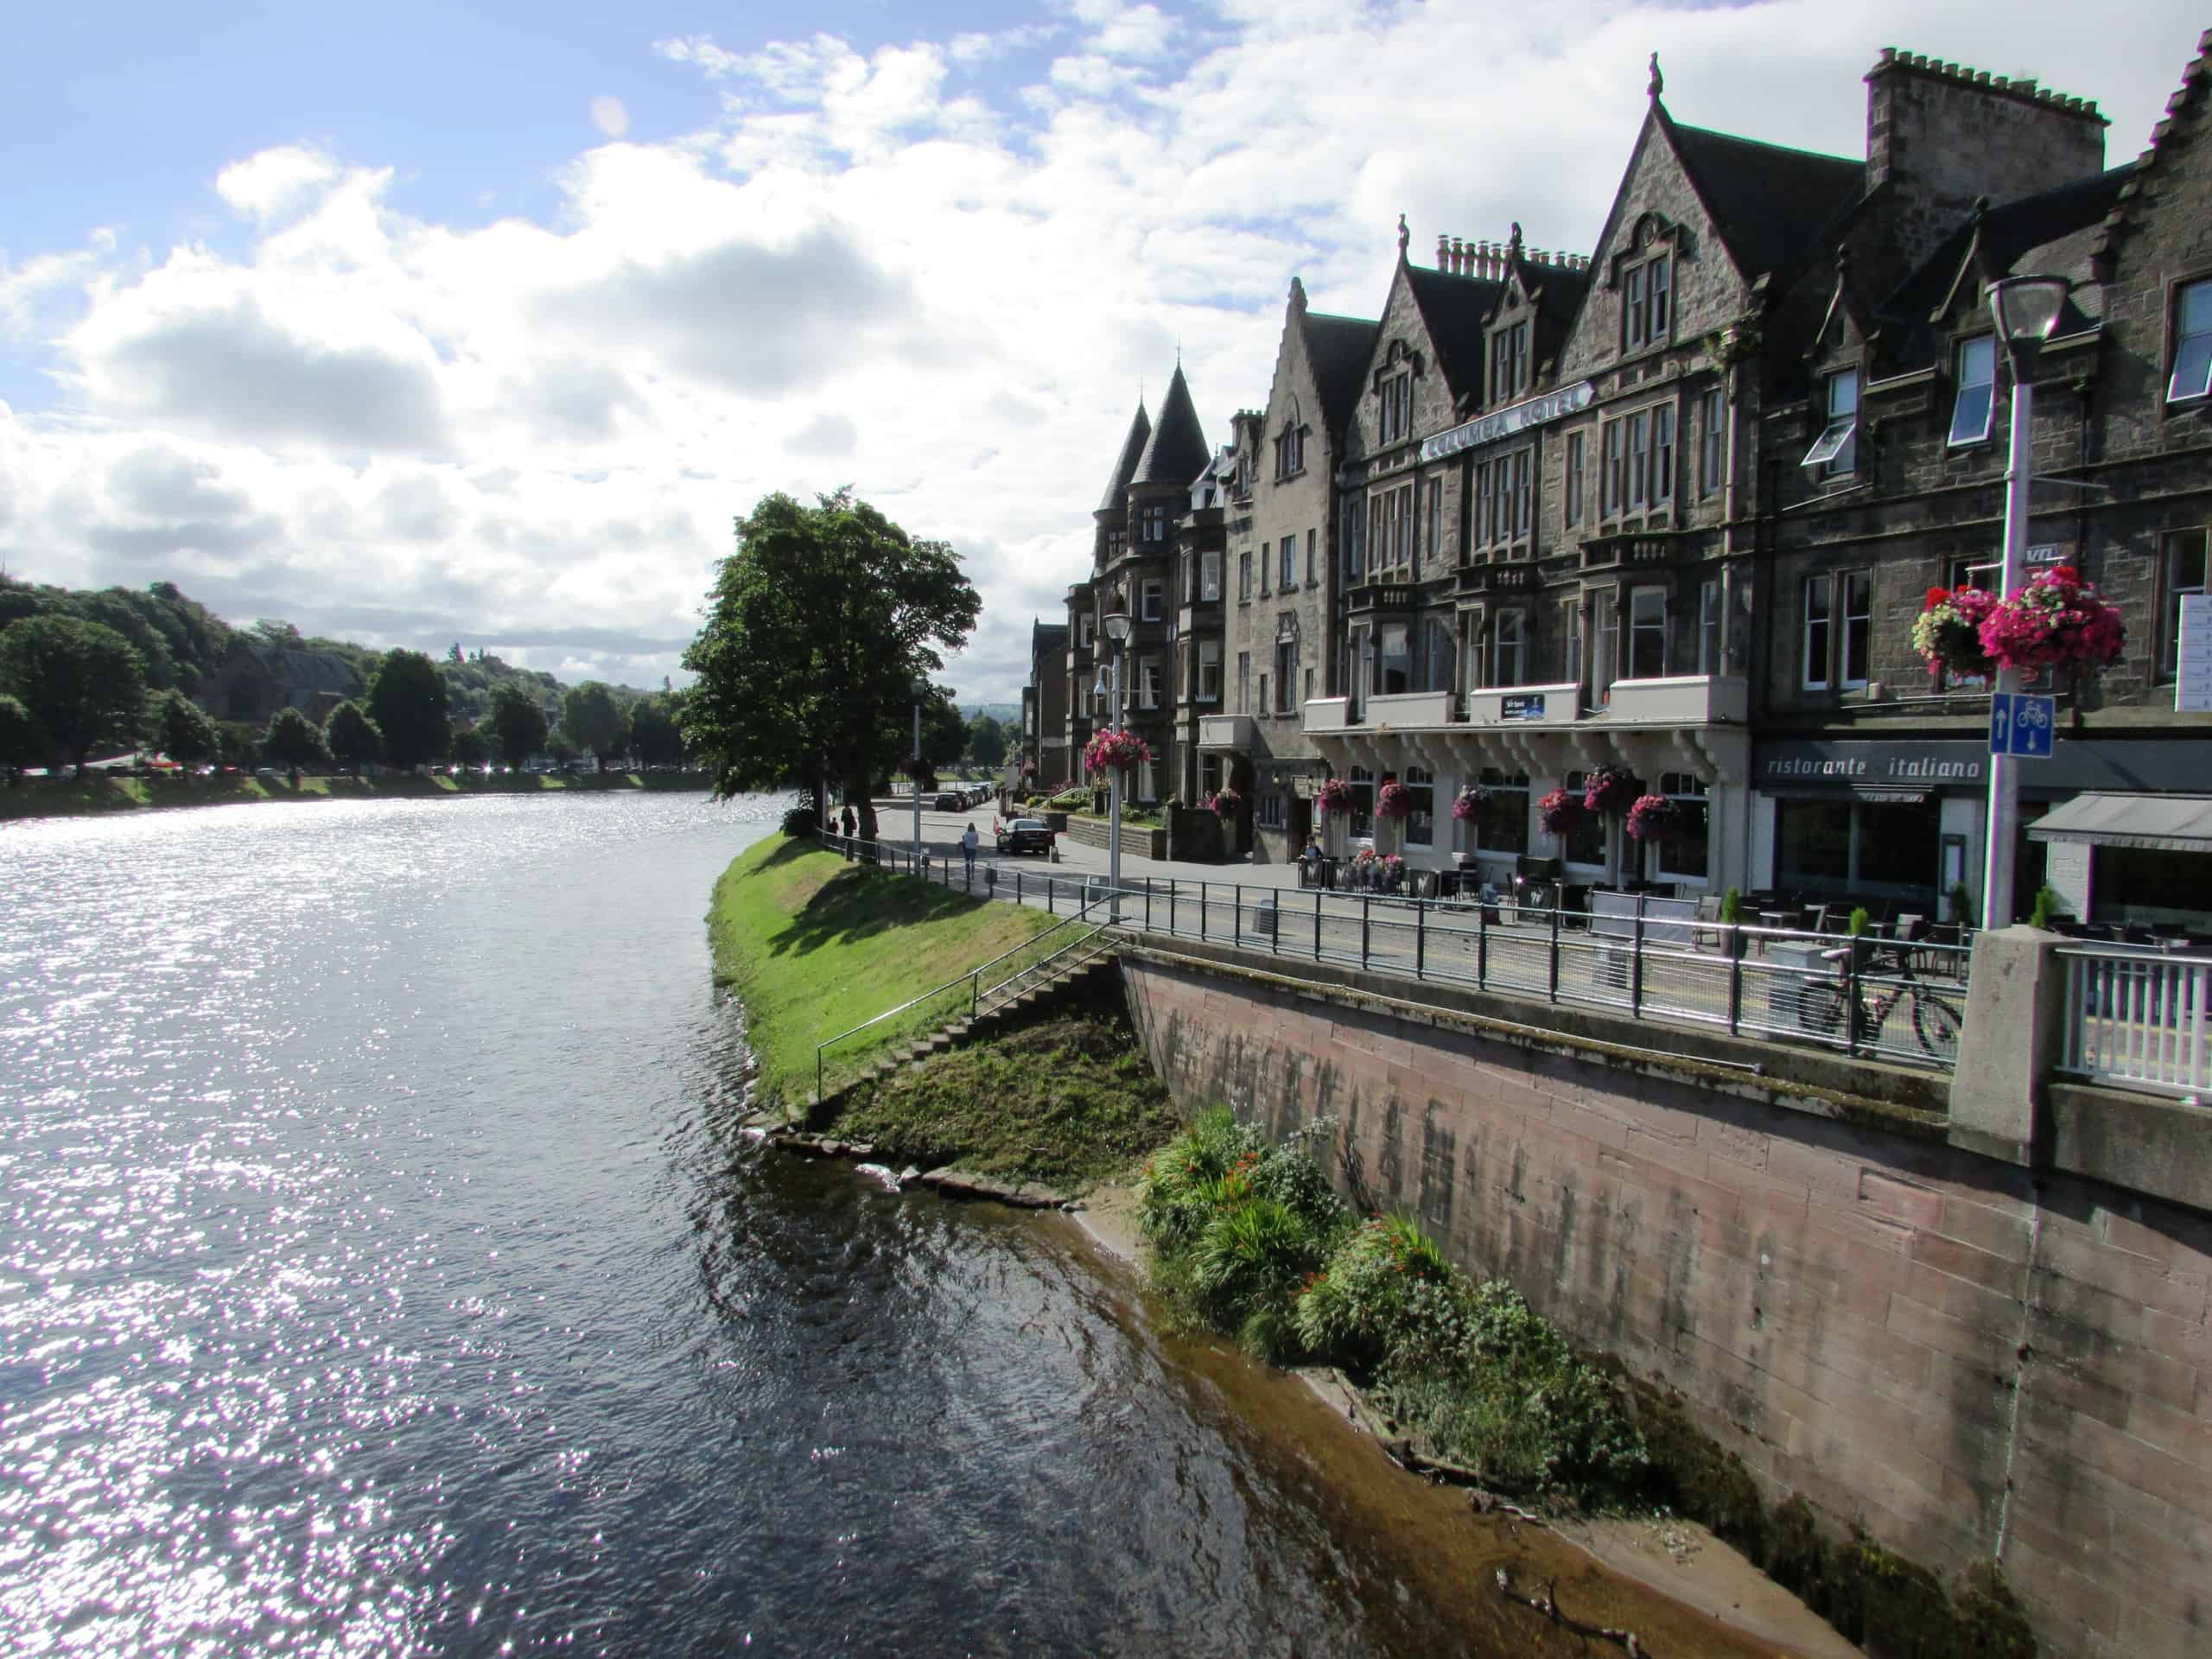 Inverness on the River Ness